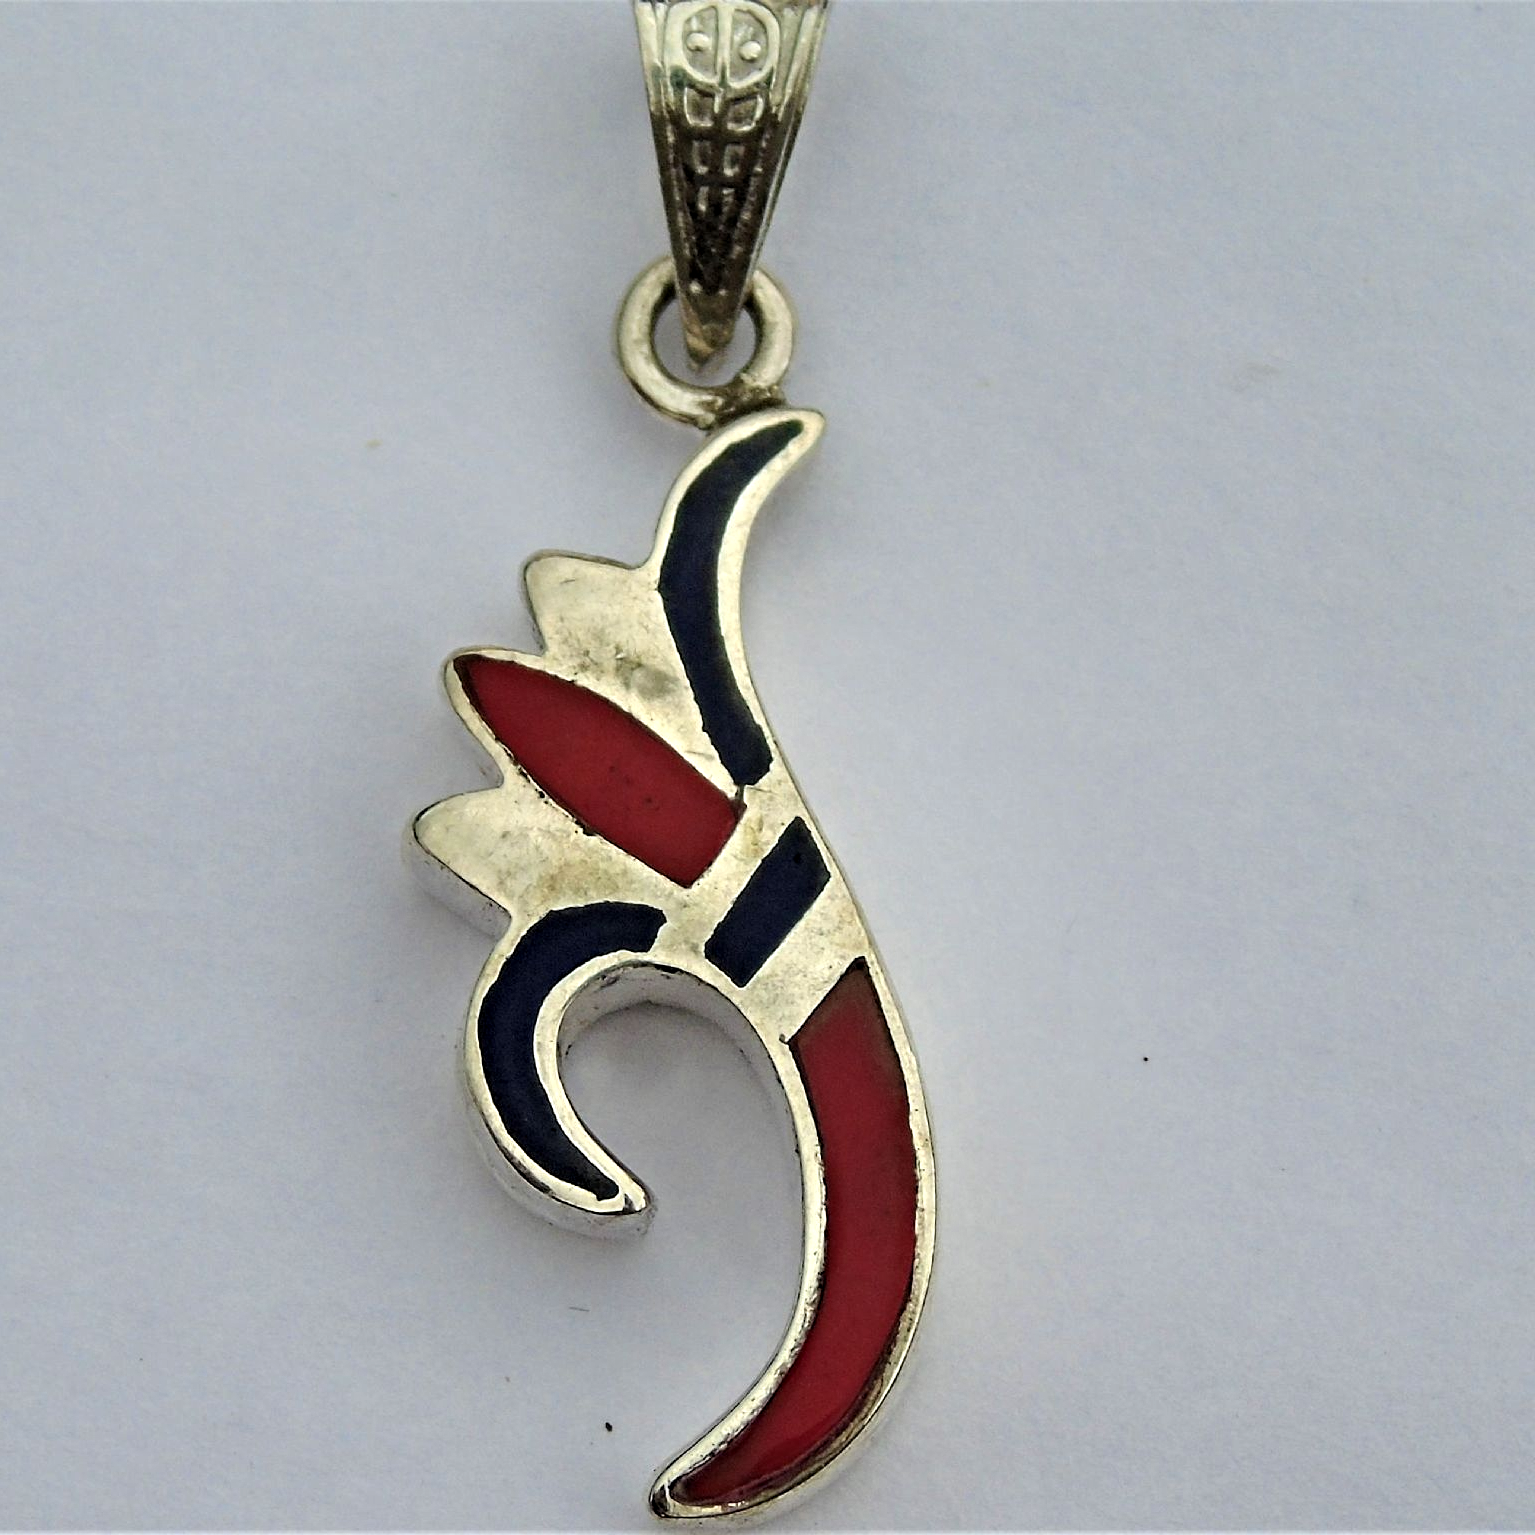 Lotus flower 925 silver pendant with lapis red coral hallmarked lotus flower silver pendant with lapis red coral hallmarkedlove and rebirth mightylinksfo